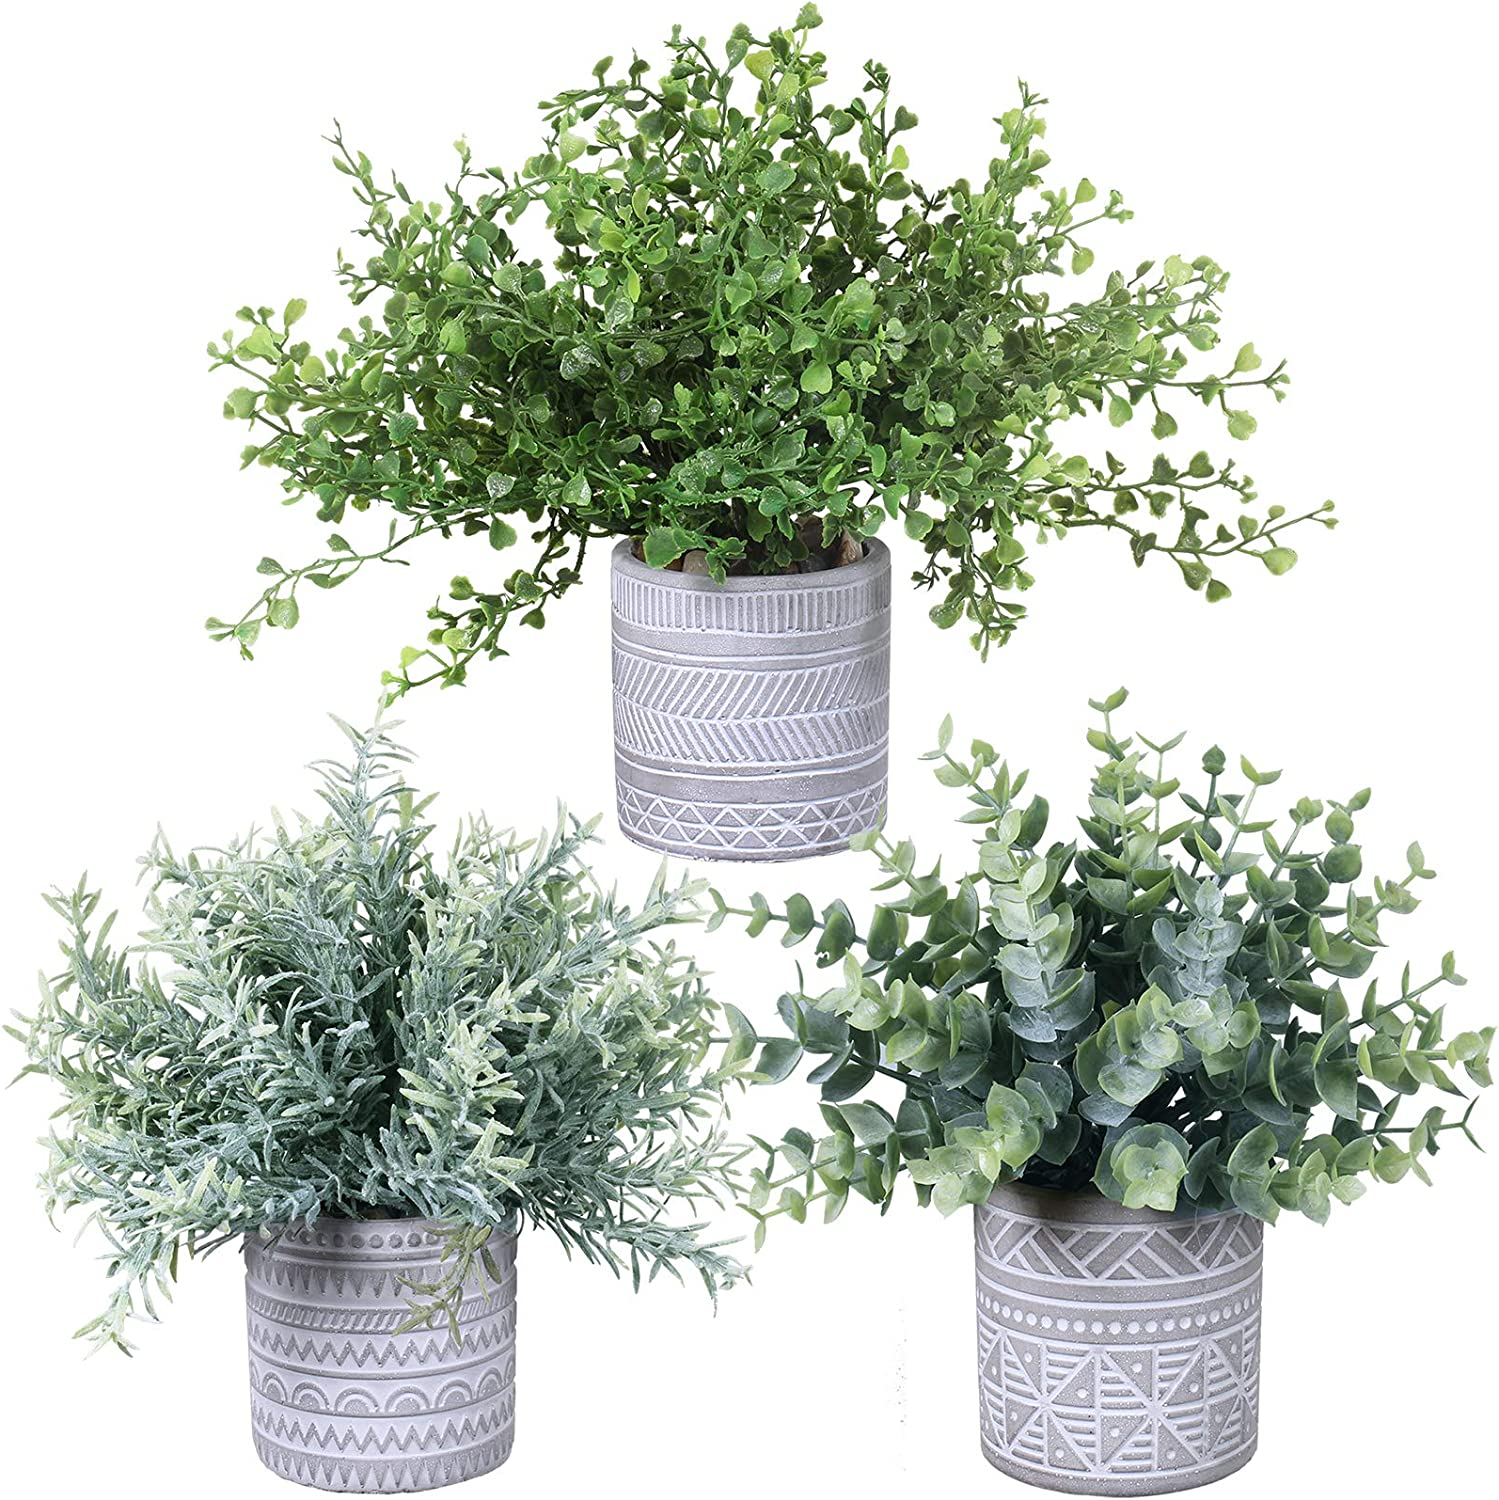 Set of 3 Assorted Fake Small Potted Plants Artificial Eucalyptus Plant Rosemary Plant Boxwood Plant in Pots Greenery Arrangement for Rustic Indoor Centerpiece Tabletop Window Sills Kitchen Shelf Decor